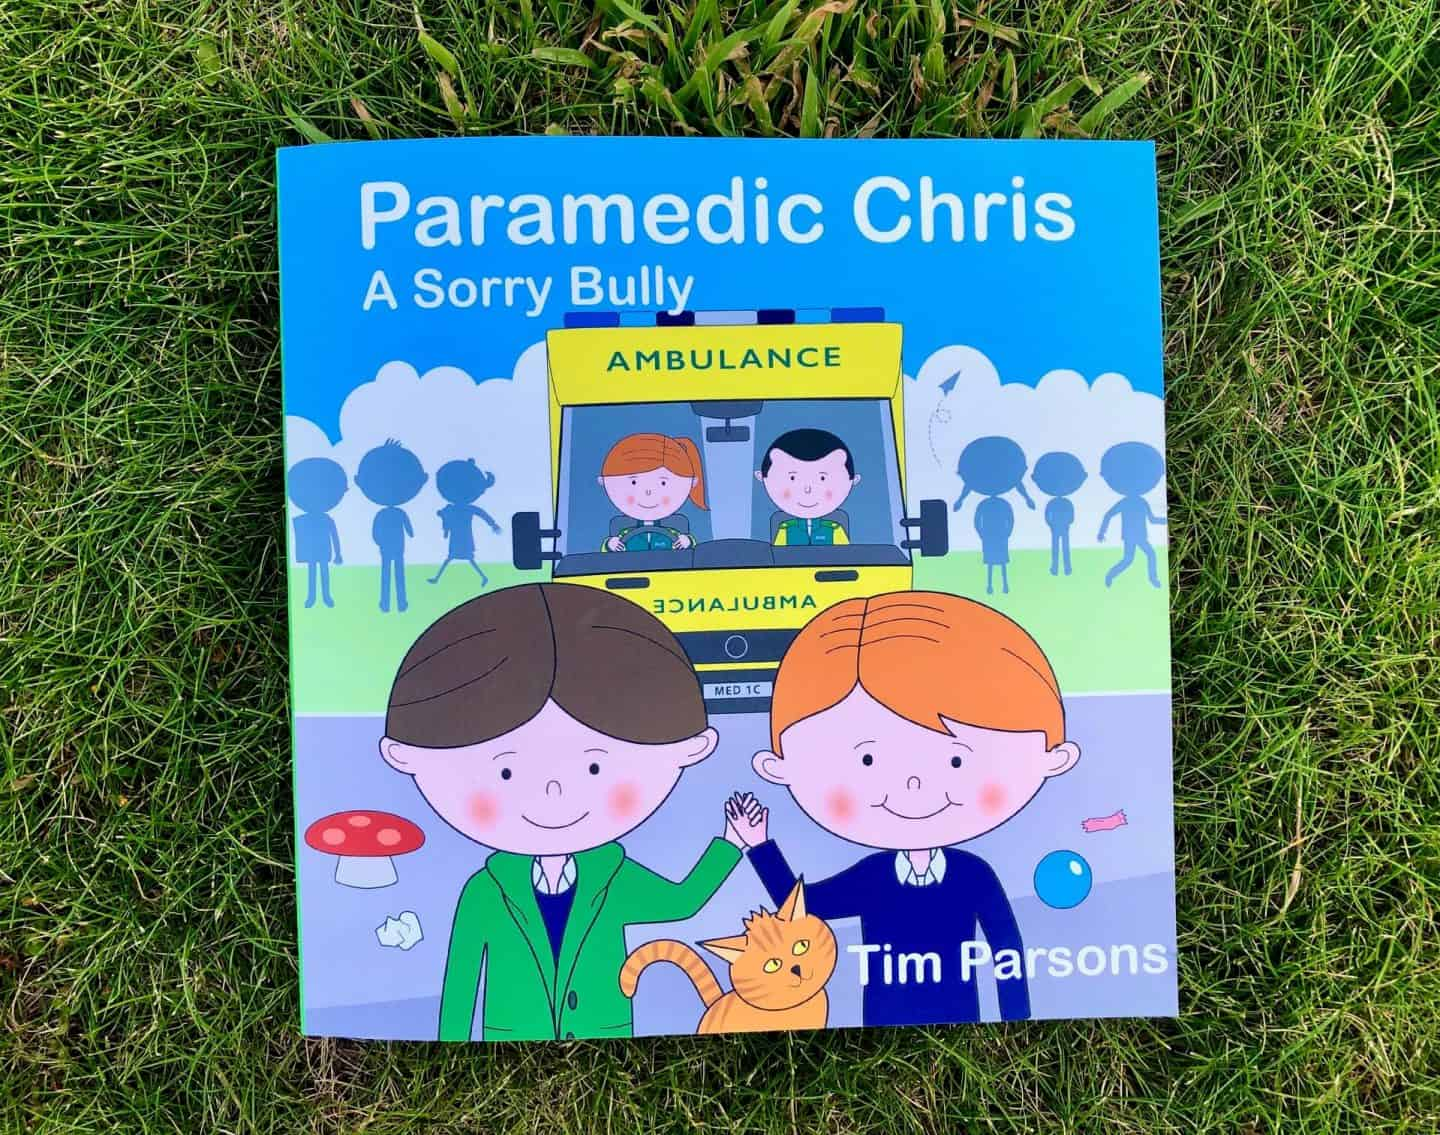 Paramedic Chris: A Sorry Bully by Tim Parsons - Review